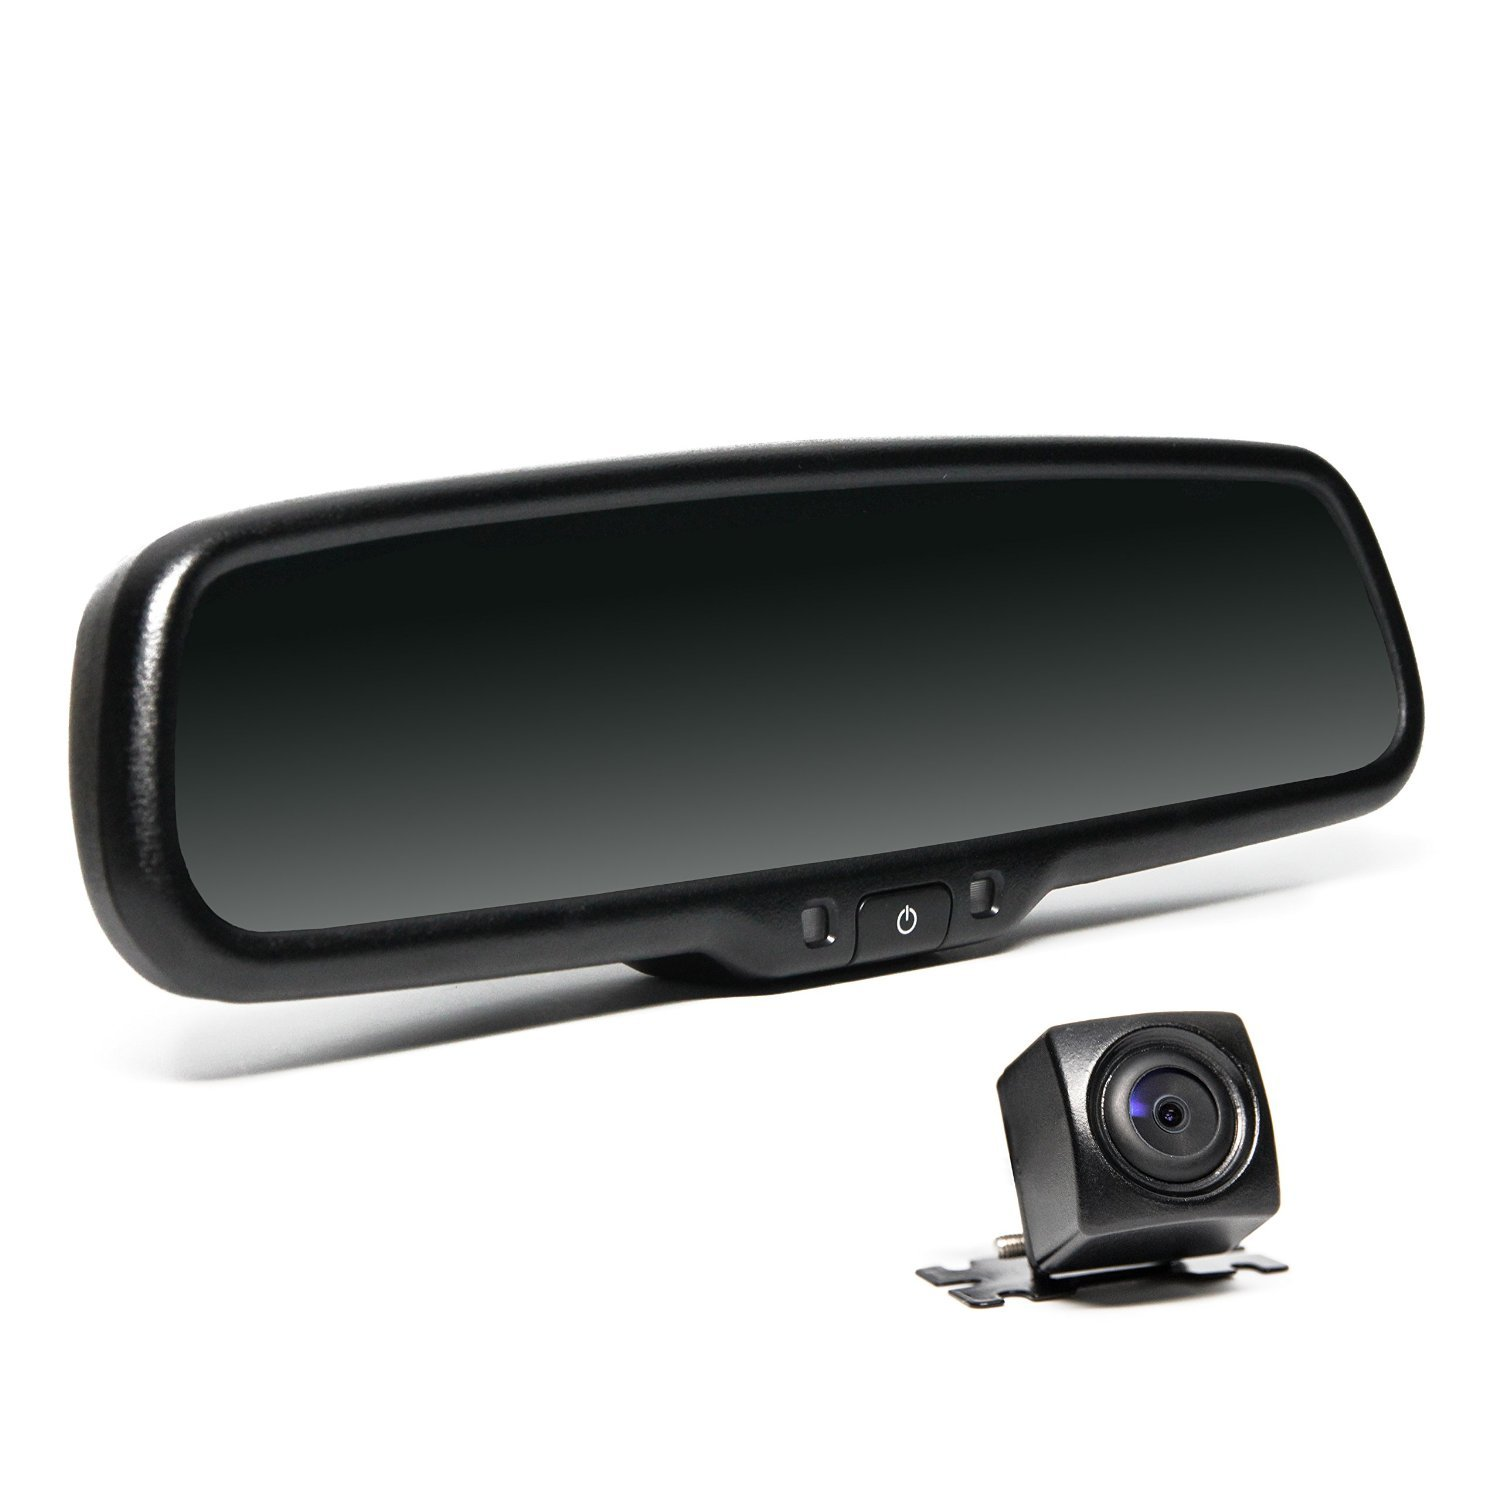 Rear View Safety OEM G-Series Backup Camera System with 4.3-Inch LCD Display RVS-776718 (Black) [並行輸入品]   B0188EHDTA